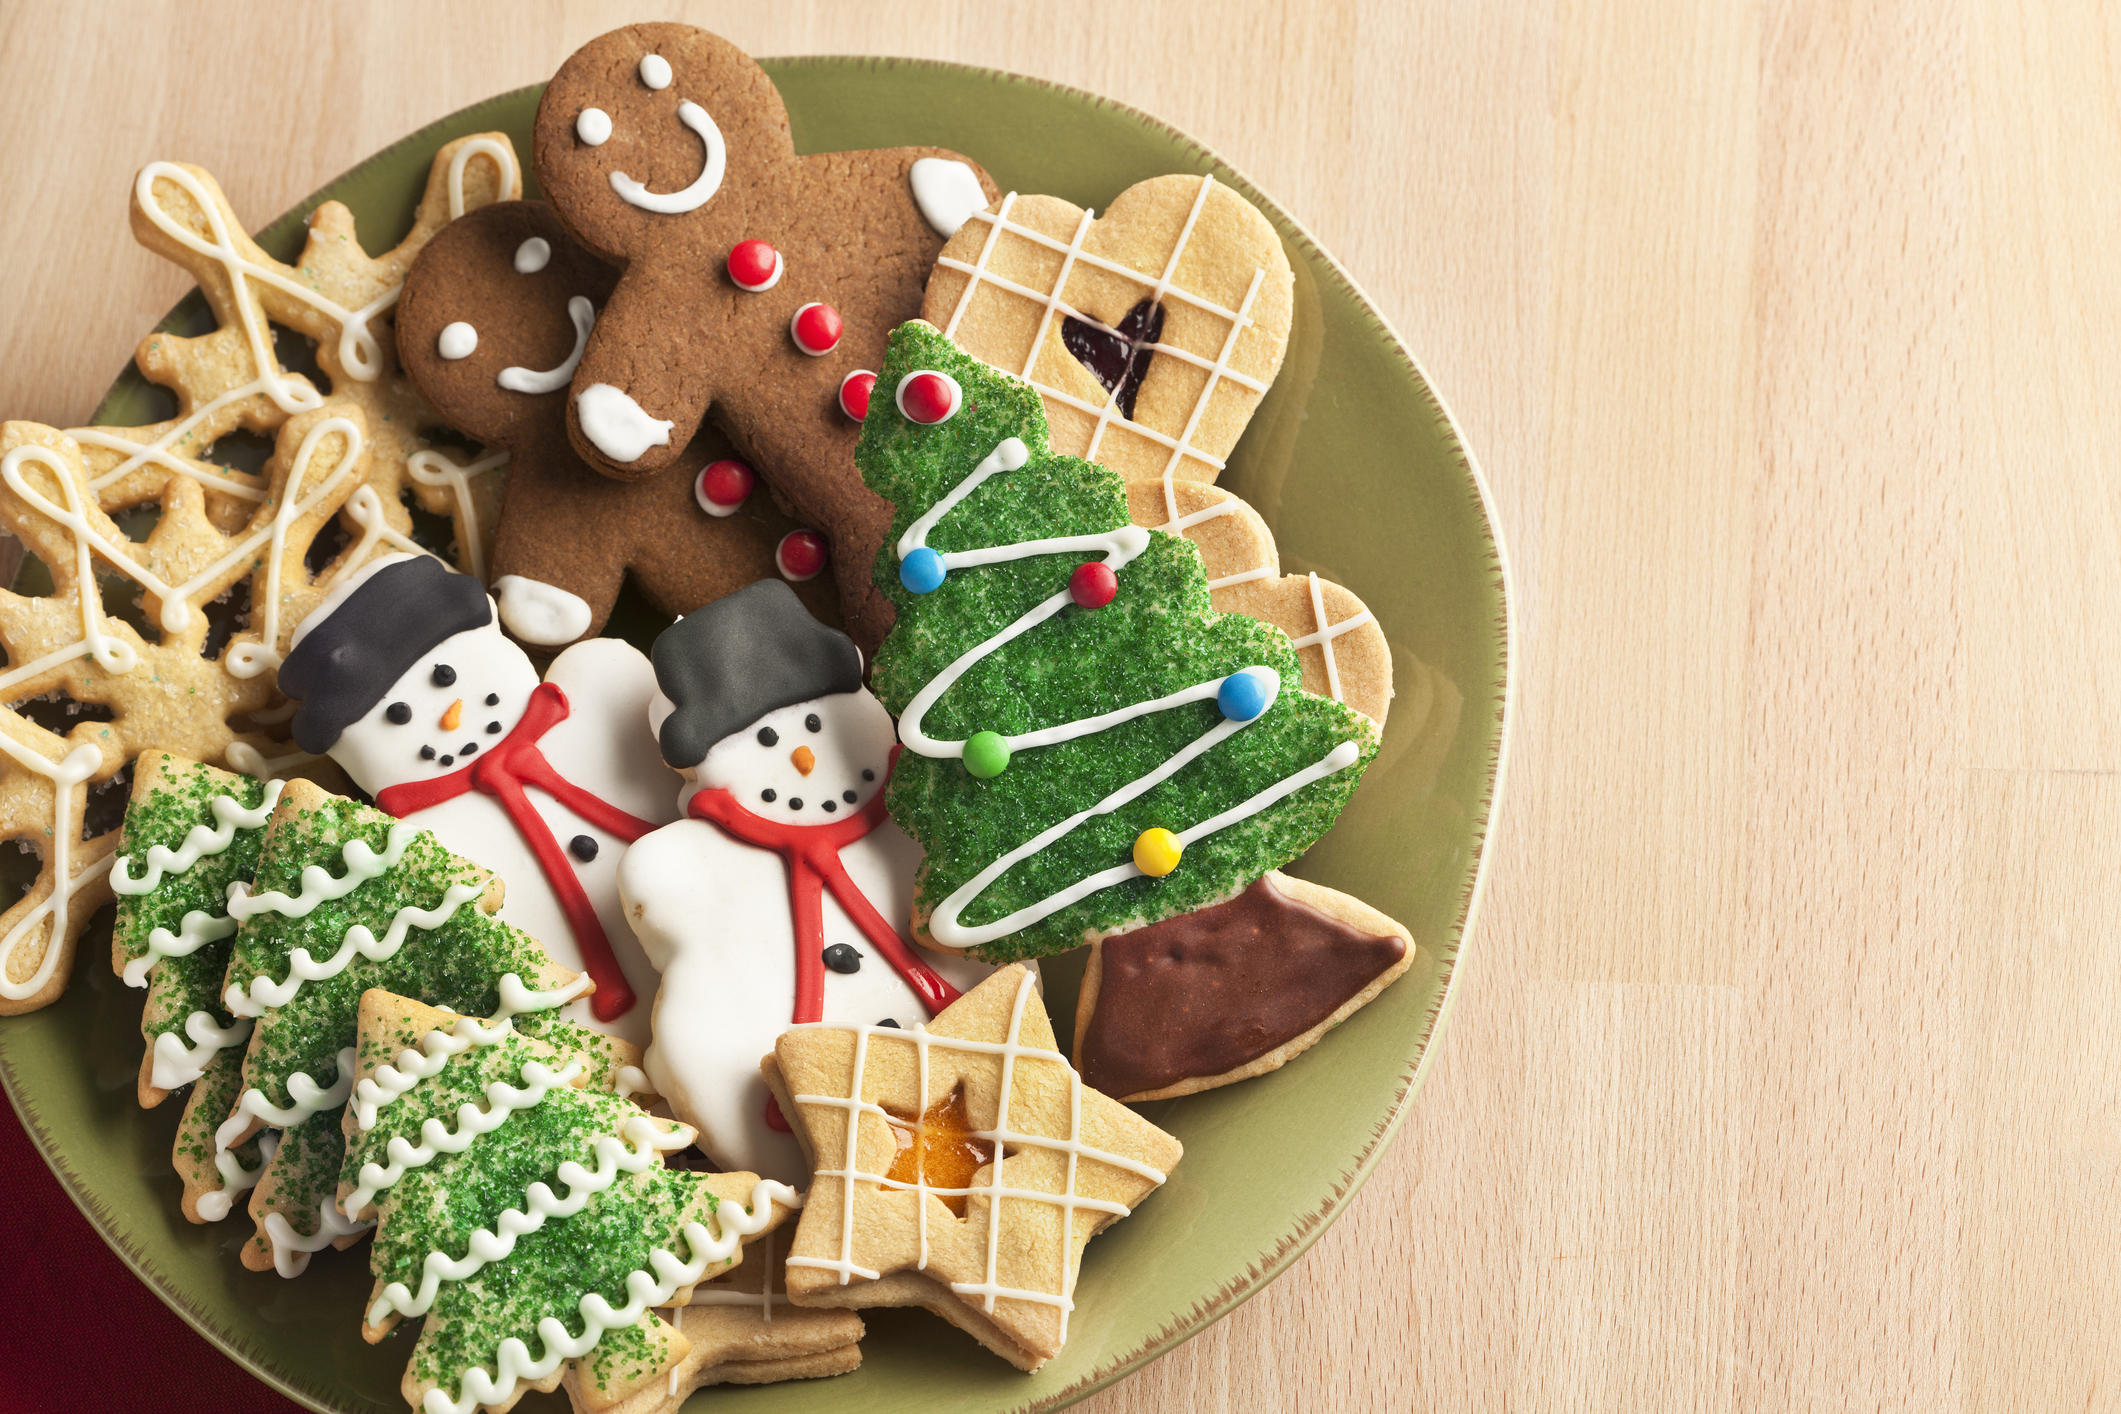 A plate filled with Christmas cookies decorated with frosting and icing for winter holiday celebrations. The baked dessert collection of sweet food features Christmas tree, gingerbread man, snowman, star, heart, and snowflake shapes against the green background of a ceramic plate. The light wooden table area allows for copy space.